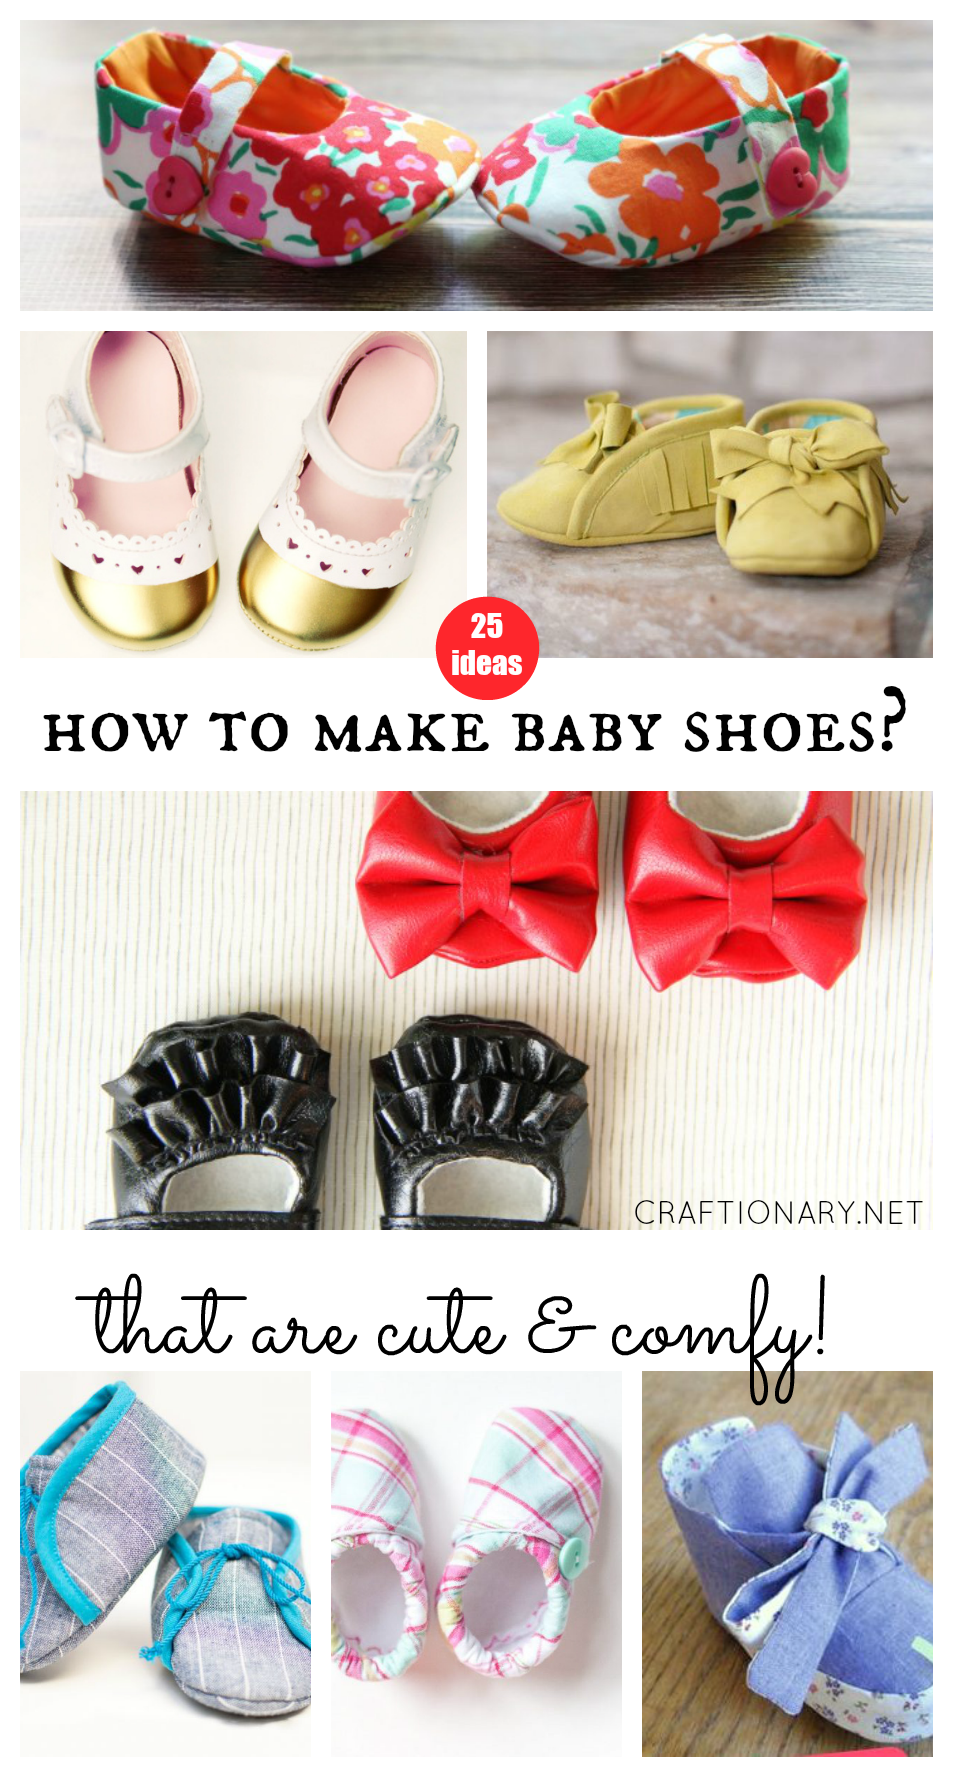 How to make baby shoes with fabric(cloth) and leather that are cute    comfy. Free patterns and sewing tutorials for handmade baby sandals